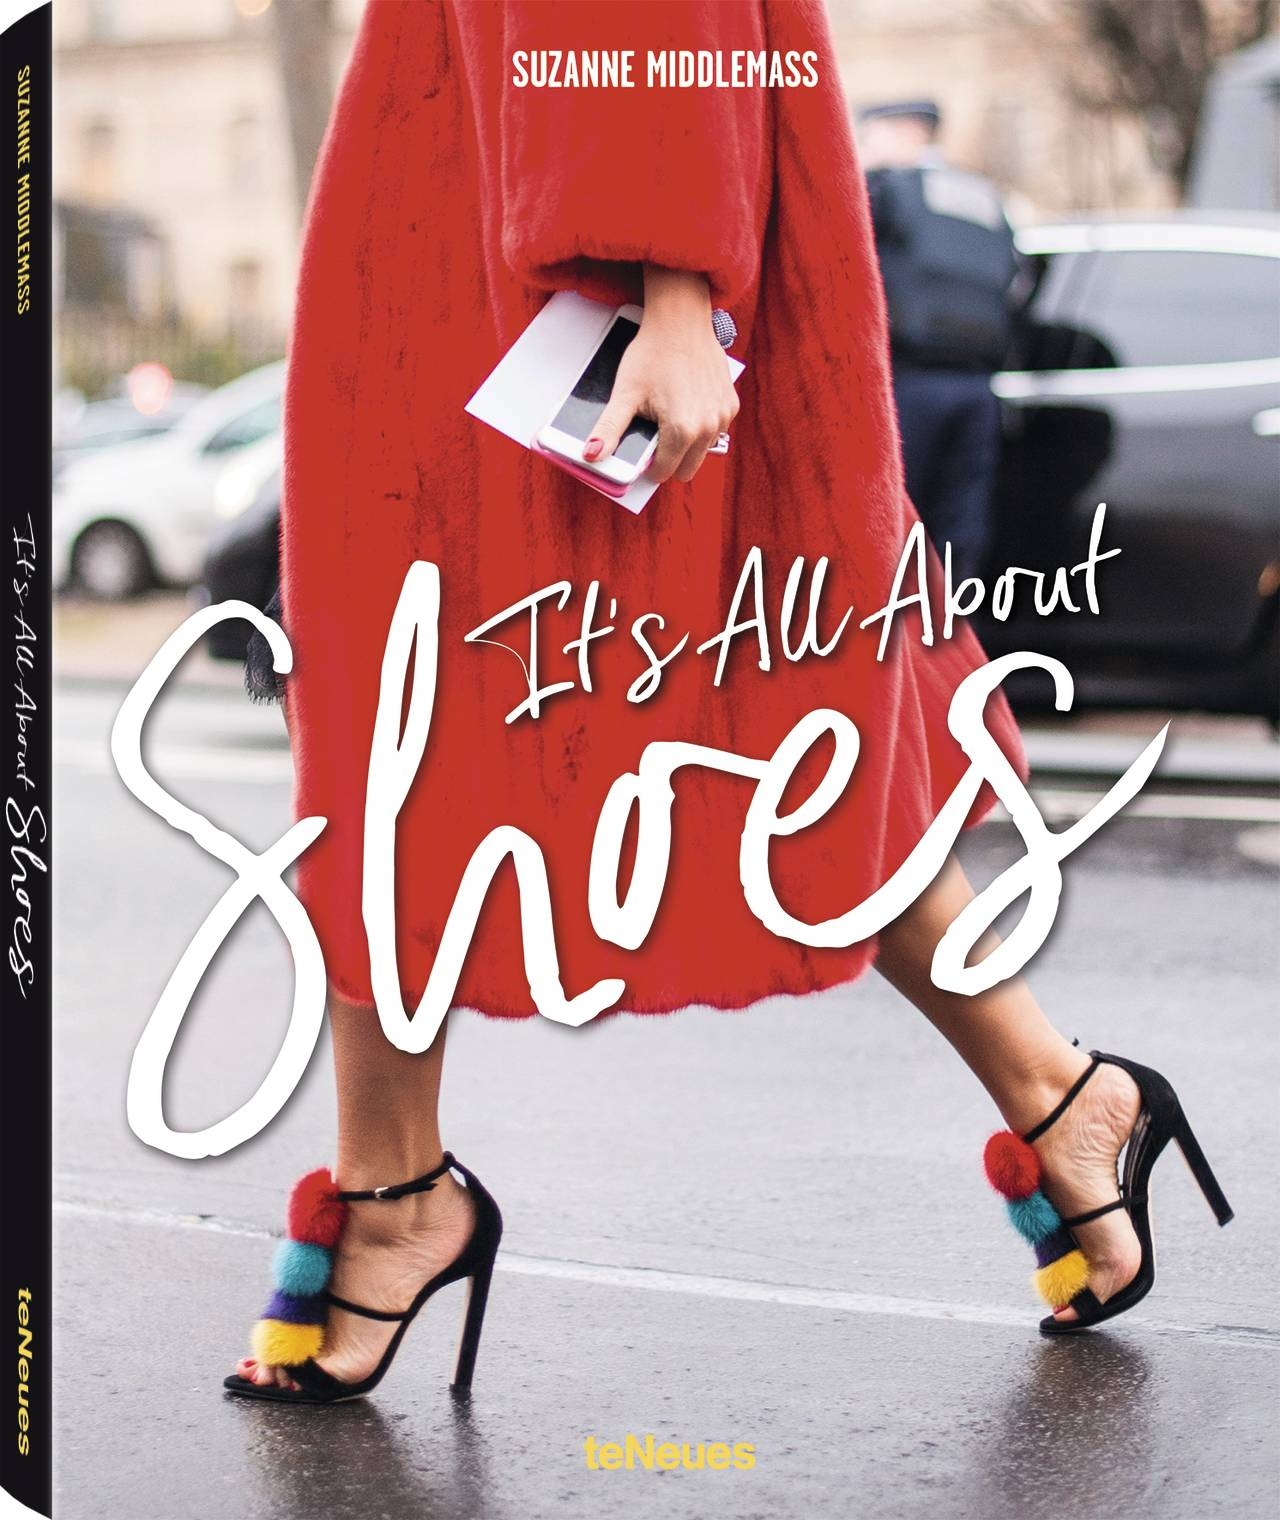 © It's All About Shoes by Suzanne Middlemass, published by teNeues, www.teneues.com, near Rodin Museum, Paris, France, February 2014, Photo © 2017 Suzanne Middlemass. All rights reserved.